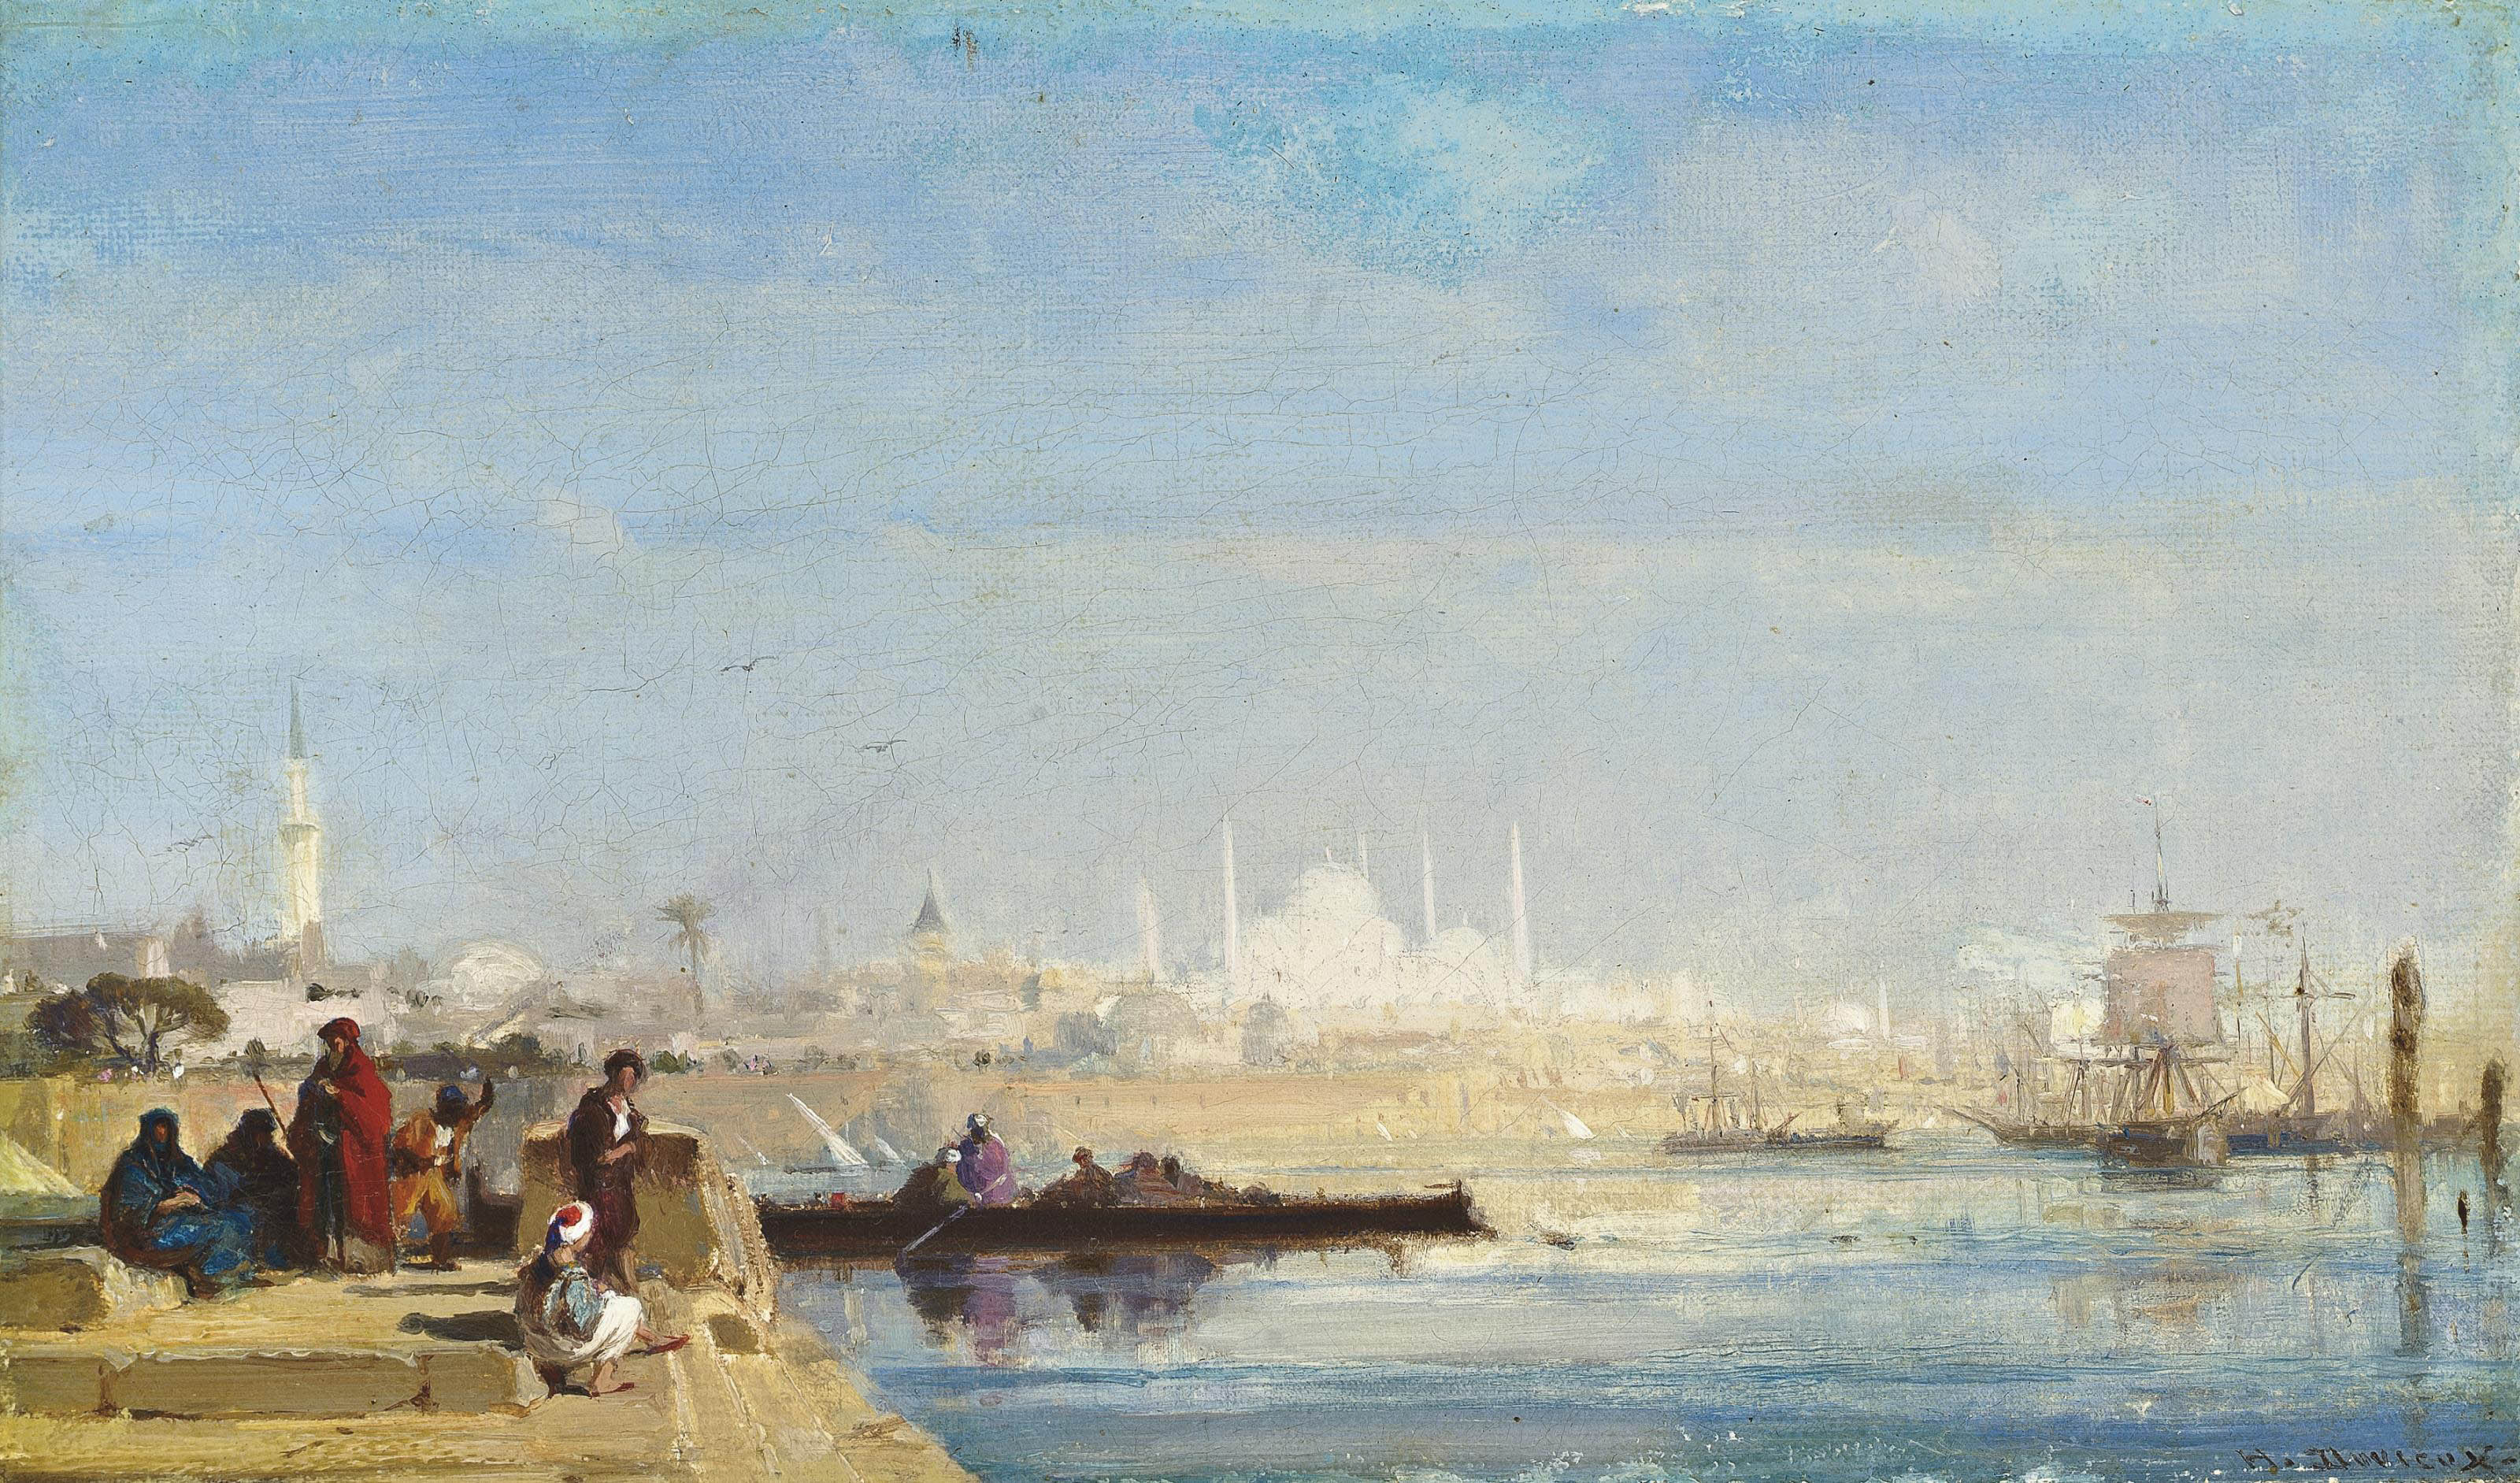 Turks waiting at a quay on the Bosphourus, Istanbul